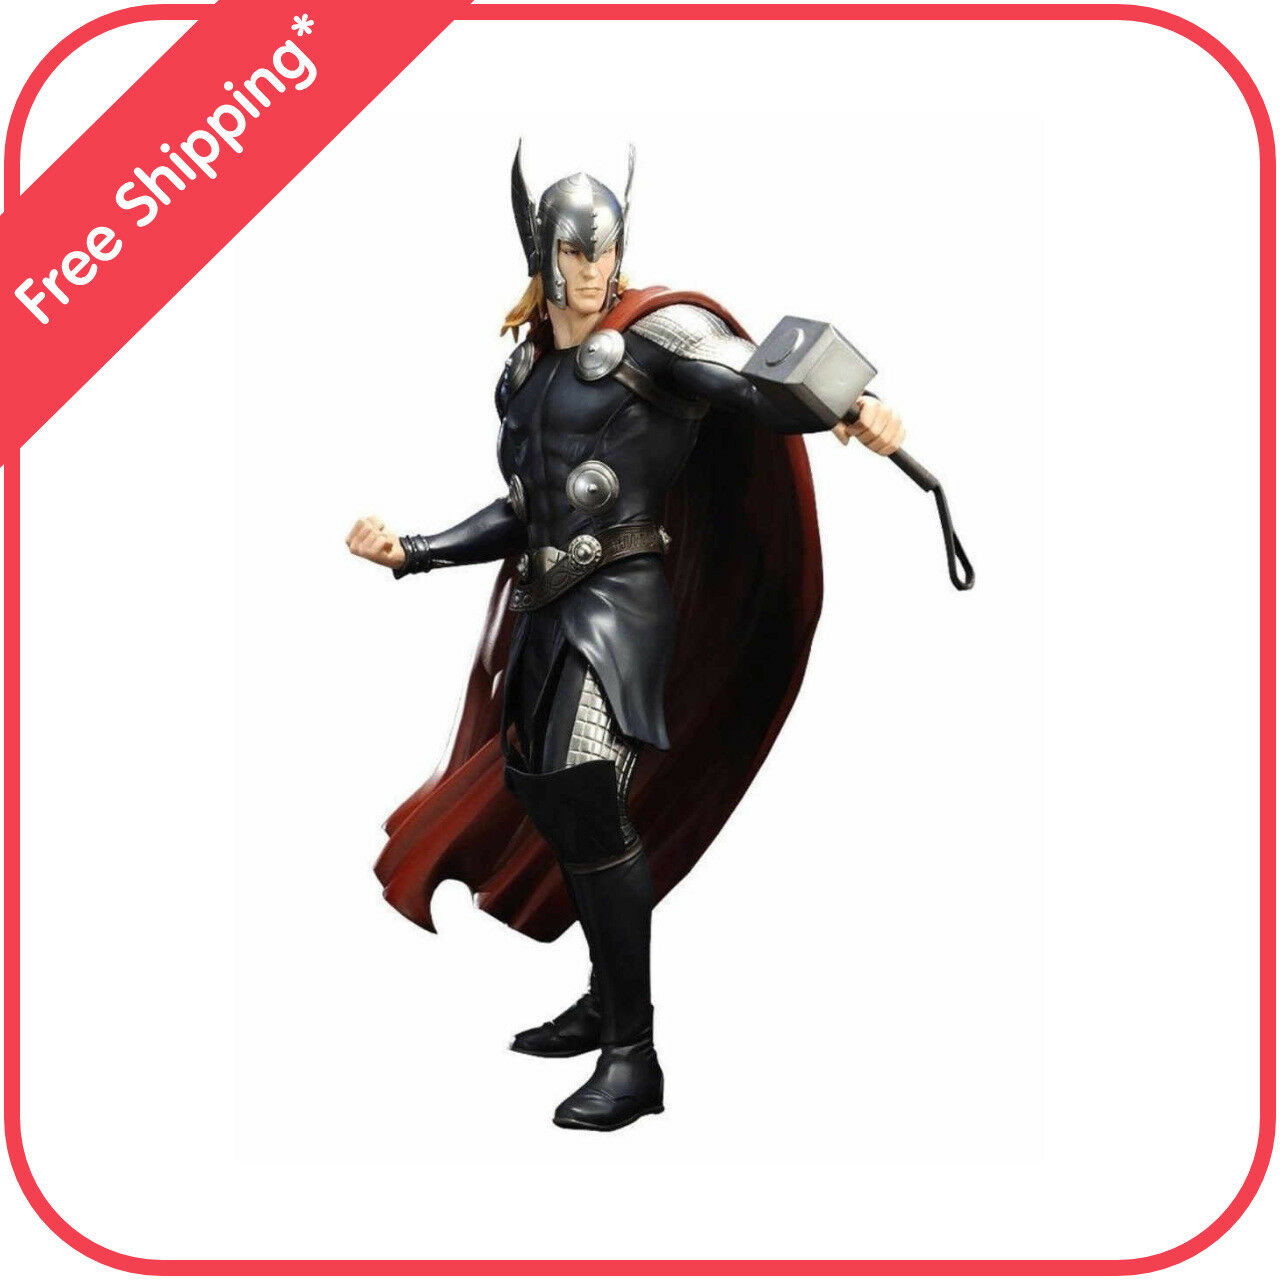 Marvel NOW  Thor ArtFX+ statue by Kotobukiya